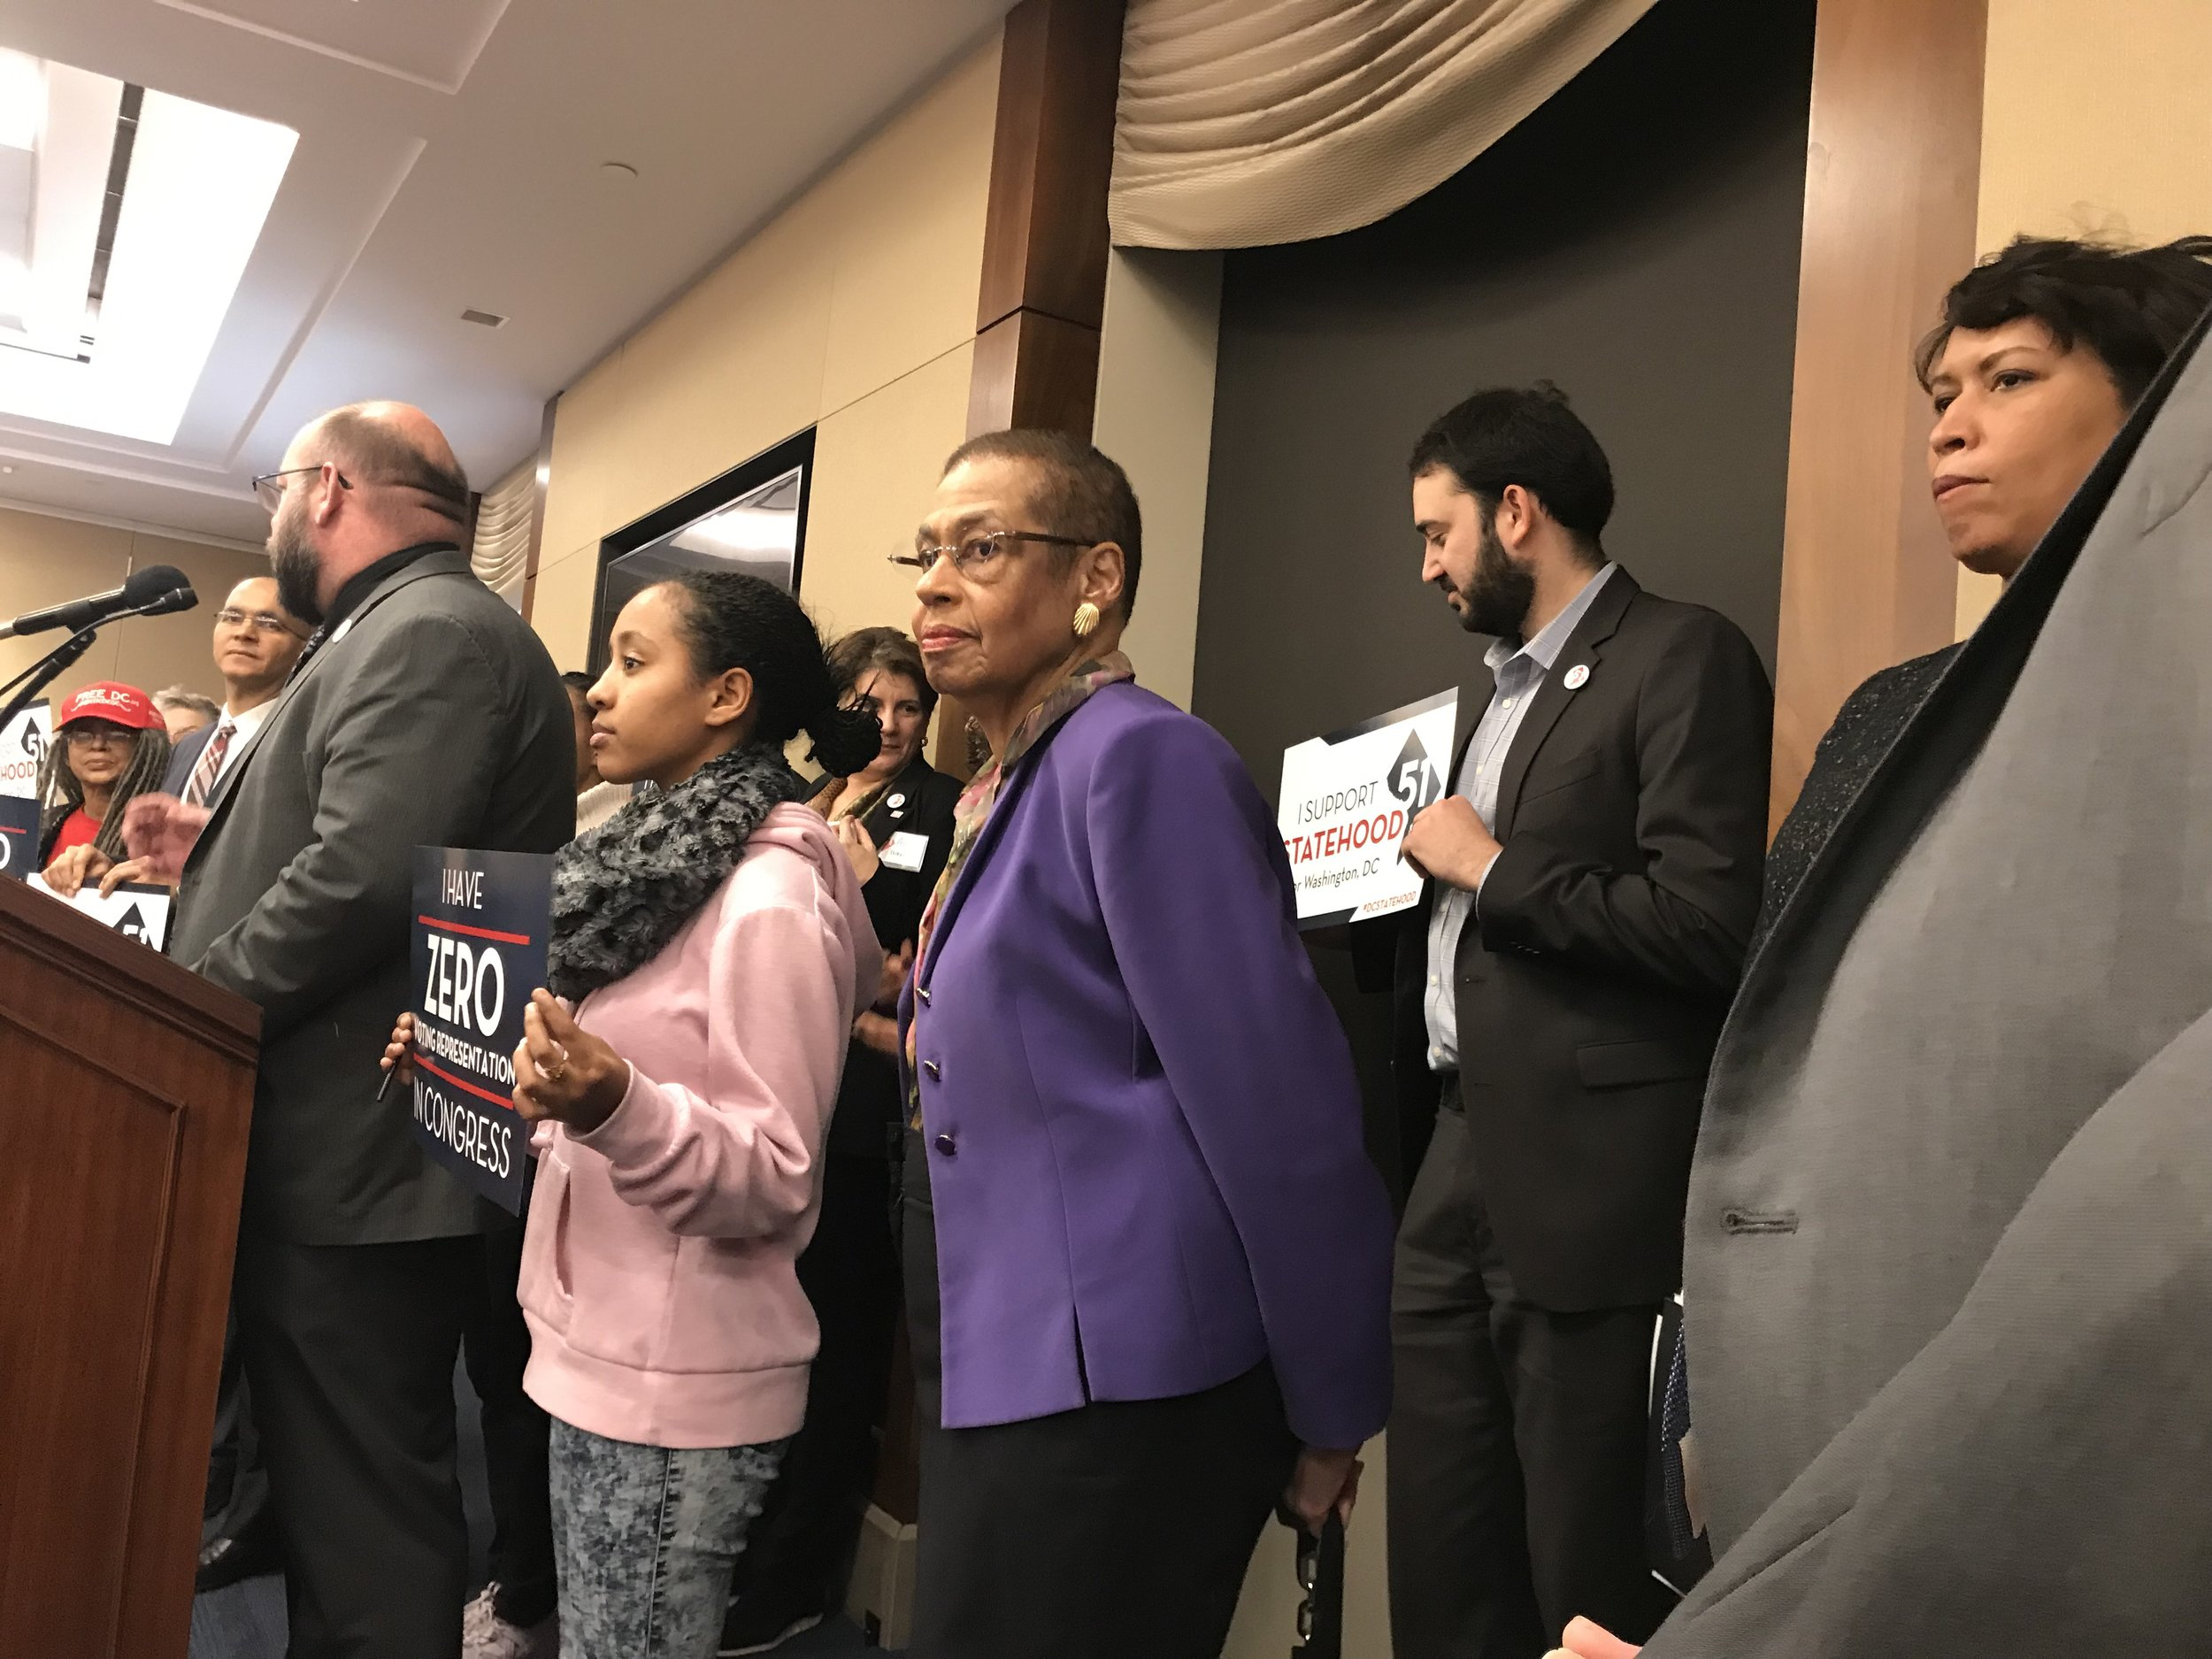 Bo Shuff (DC Vote), Eleanor Holmes Norton, and Mayor Bowser and getting us ready to lobby for DC statehood. (February 2019)